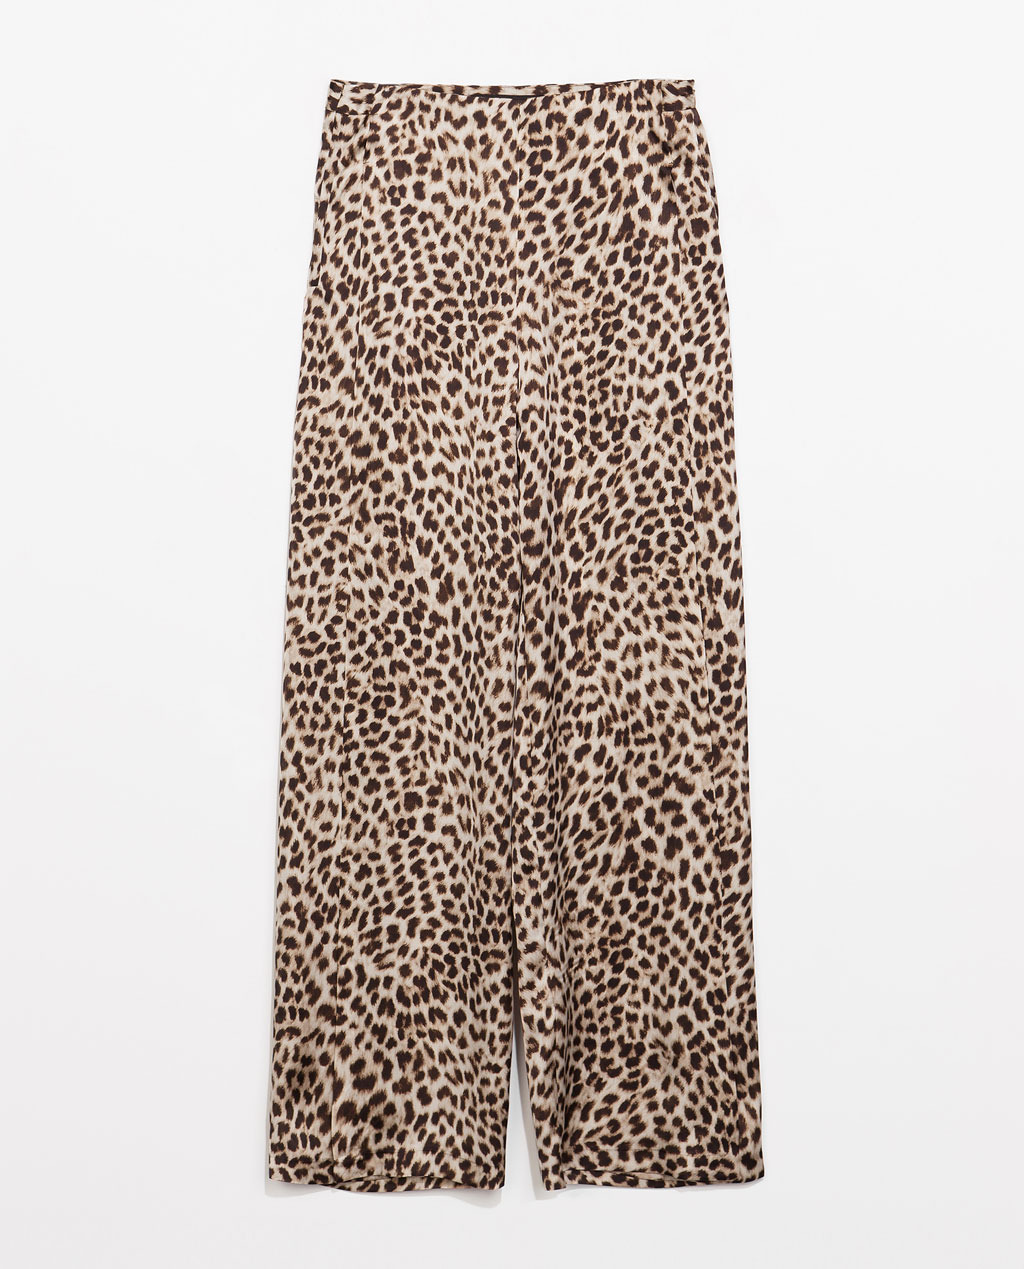 Animal Print Loose Trousers - length: standard; style: palazzo; waist: mid/regular rise; secondary colour: chocolate brown; predominant colour: stone; occasions: casual, creative work; fibres: polyester/polyamide - 100%; fit: wide leg; pattern type: fabric; pattern: animal print; texture group: other - light to midweight; season: s/s 2014; pattern size: standard (bottom)